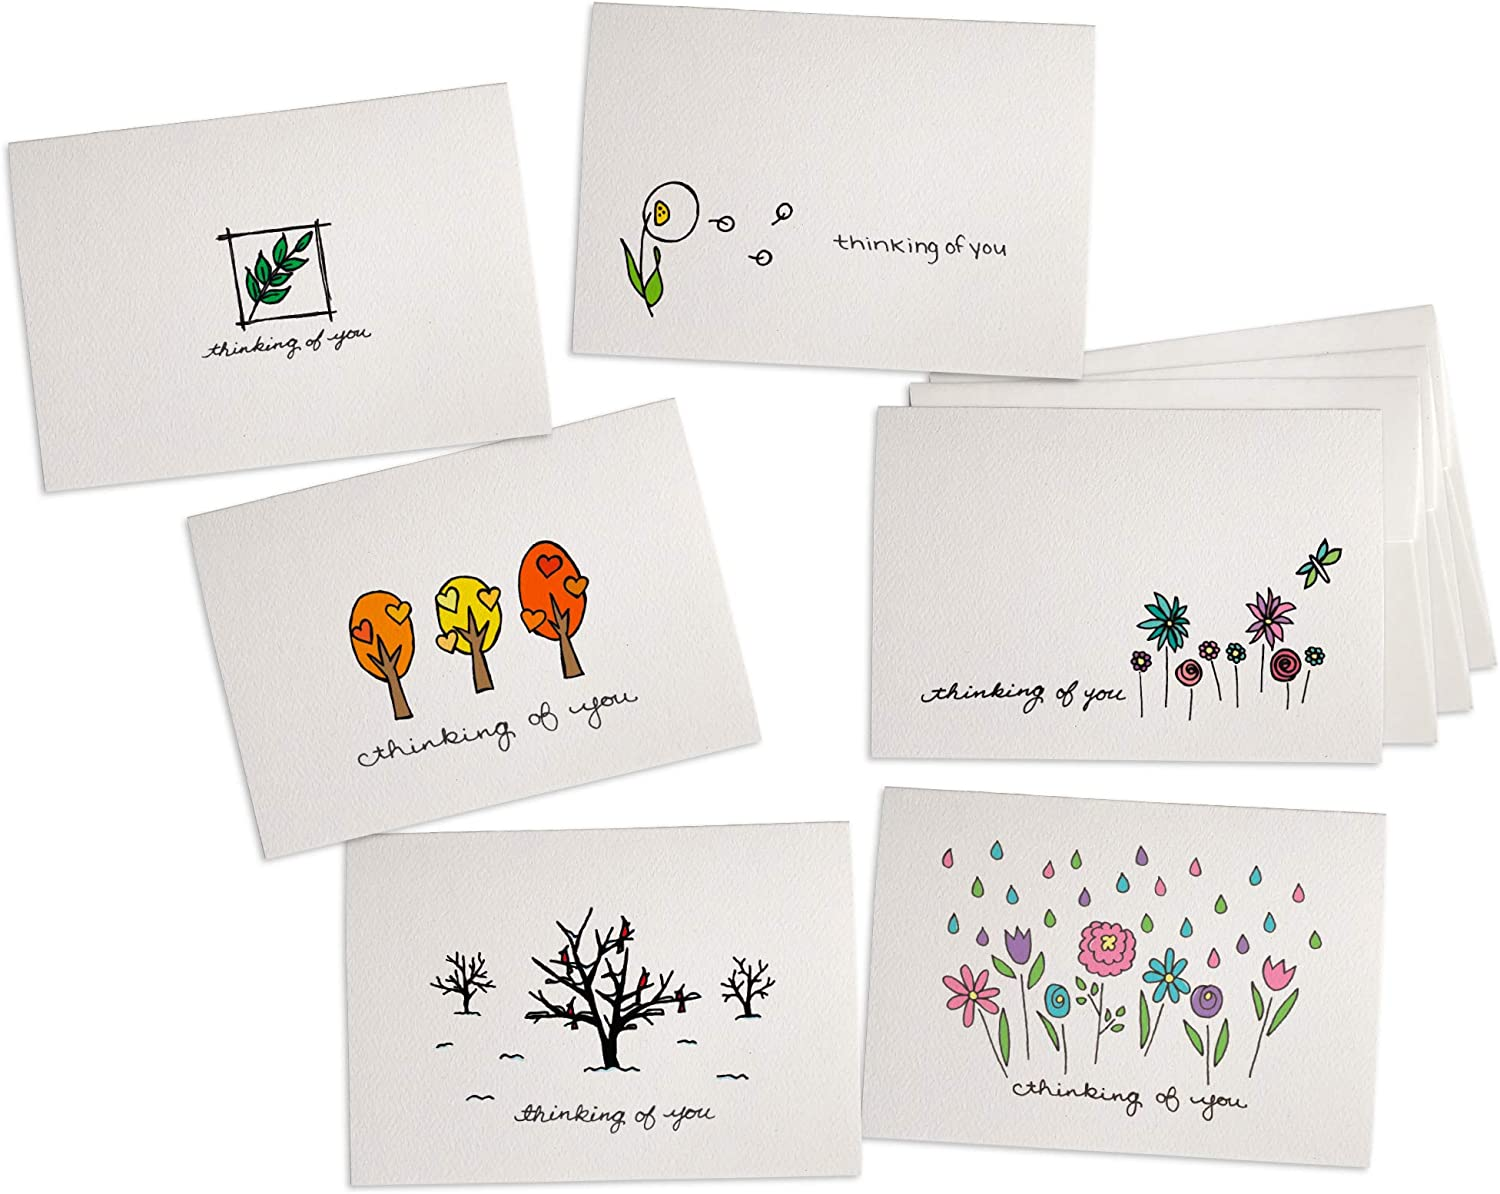 Nature Thinking of You Collection Pack Set - 24 Note Cards with Envelopes